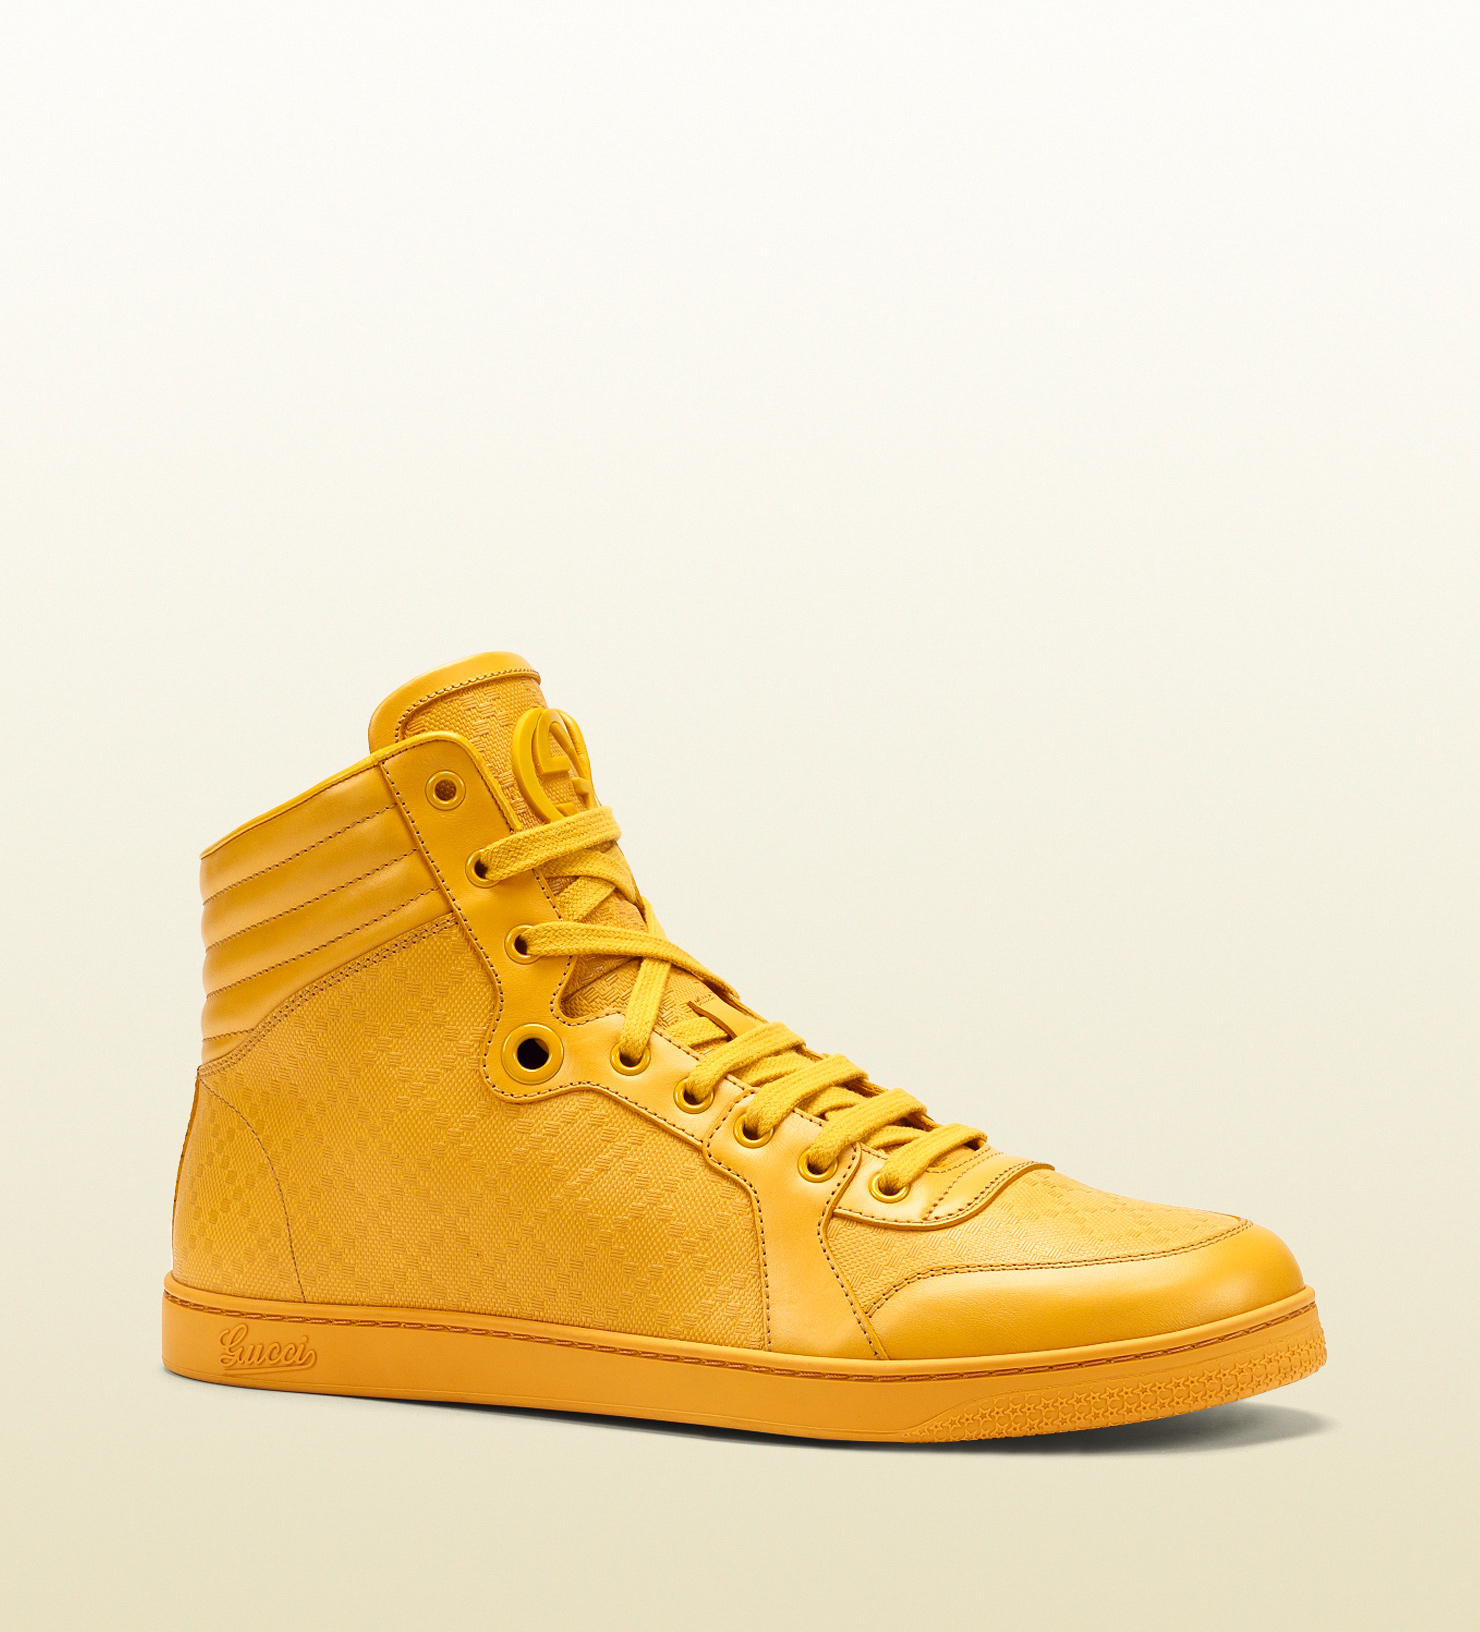 Gucci Diamante Leather High-top Sneaker in Yellow for Men